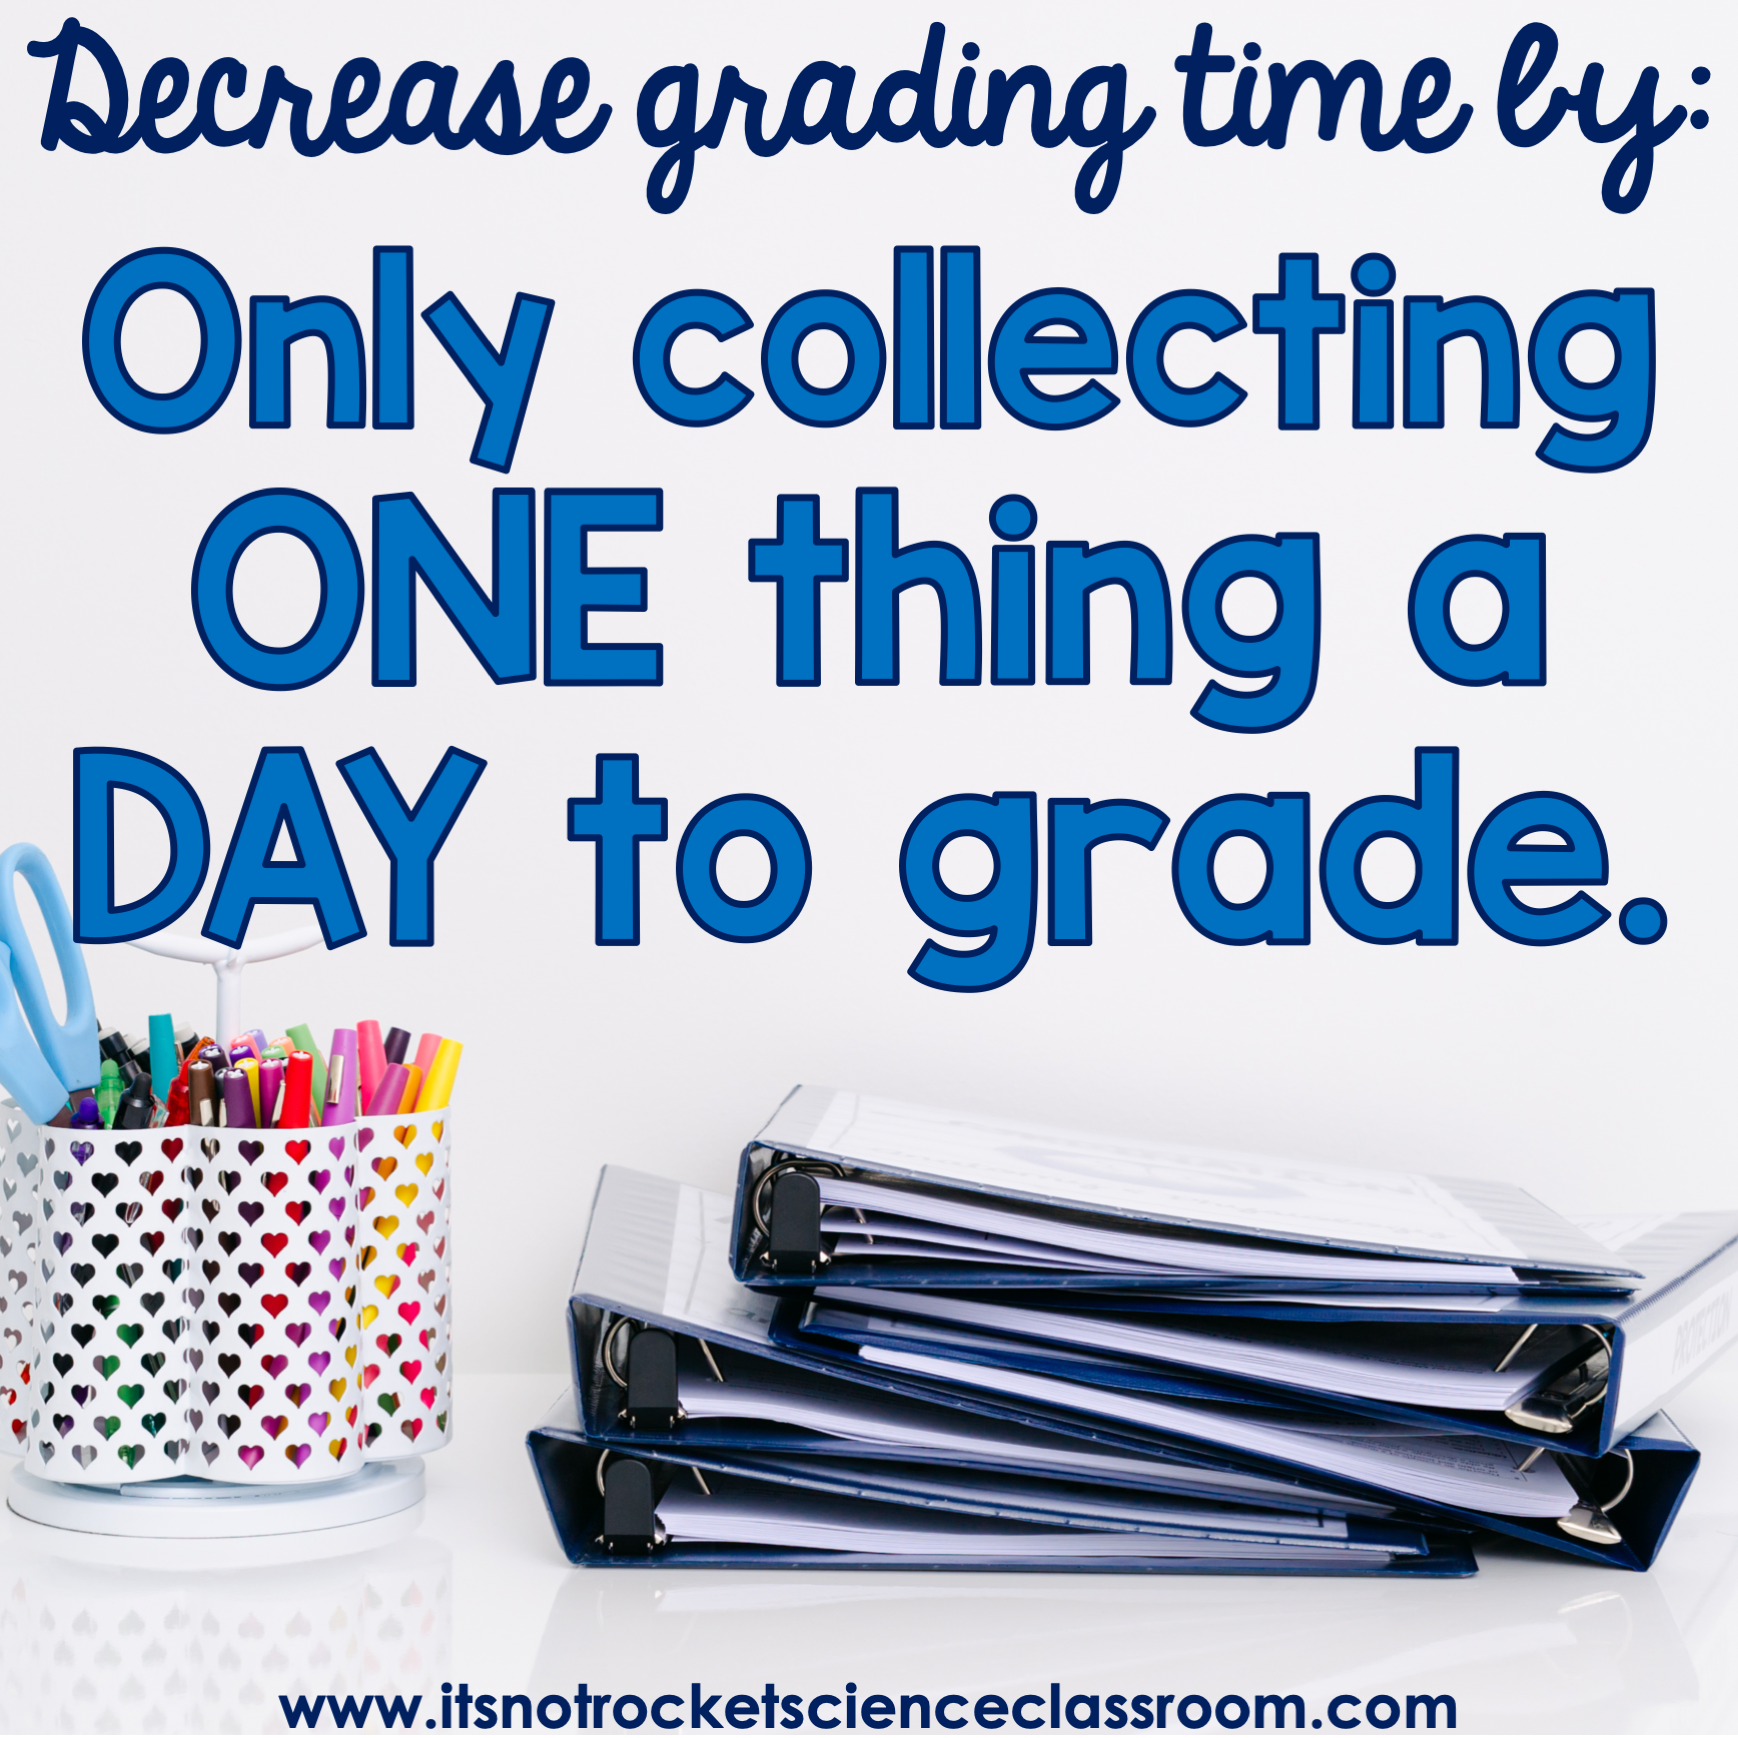 Tip #1 to decrease grading time: only collecting one thing a day to grade.